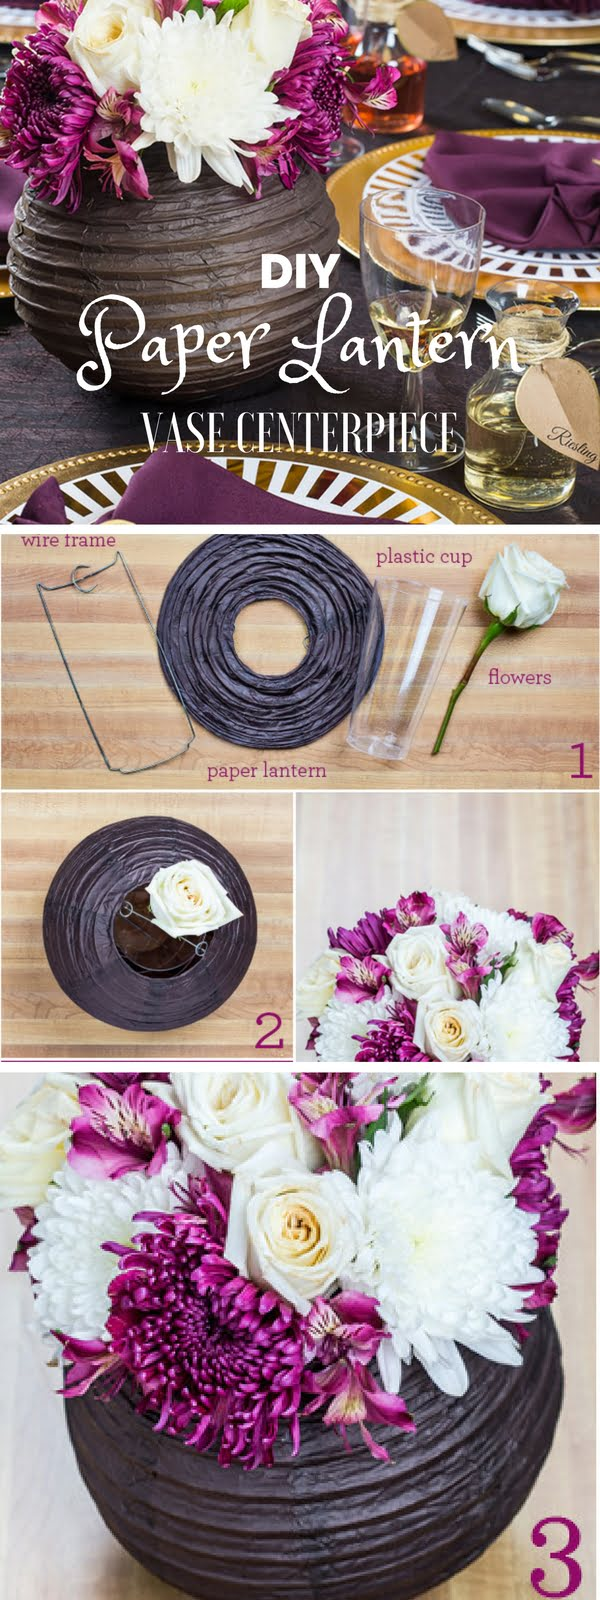 15 Easy and Brilliant DIY Home Decor Crafts on a Budget - Check out the tutorial: #DIY Paper Lantern Vase Centerpiece